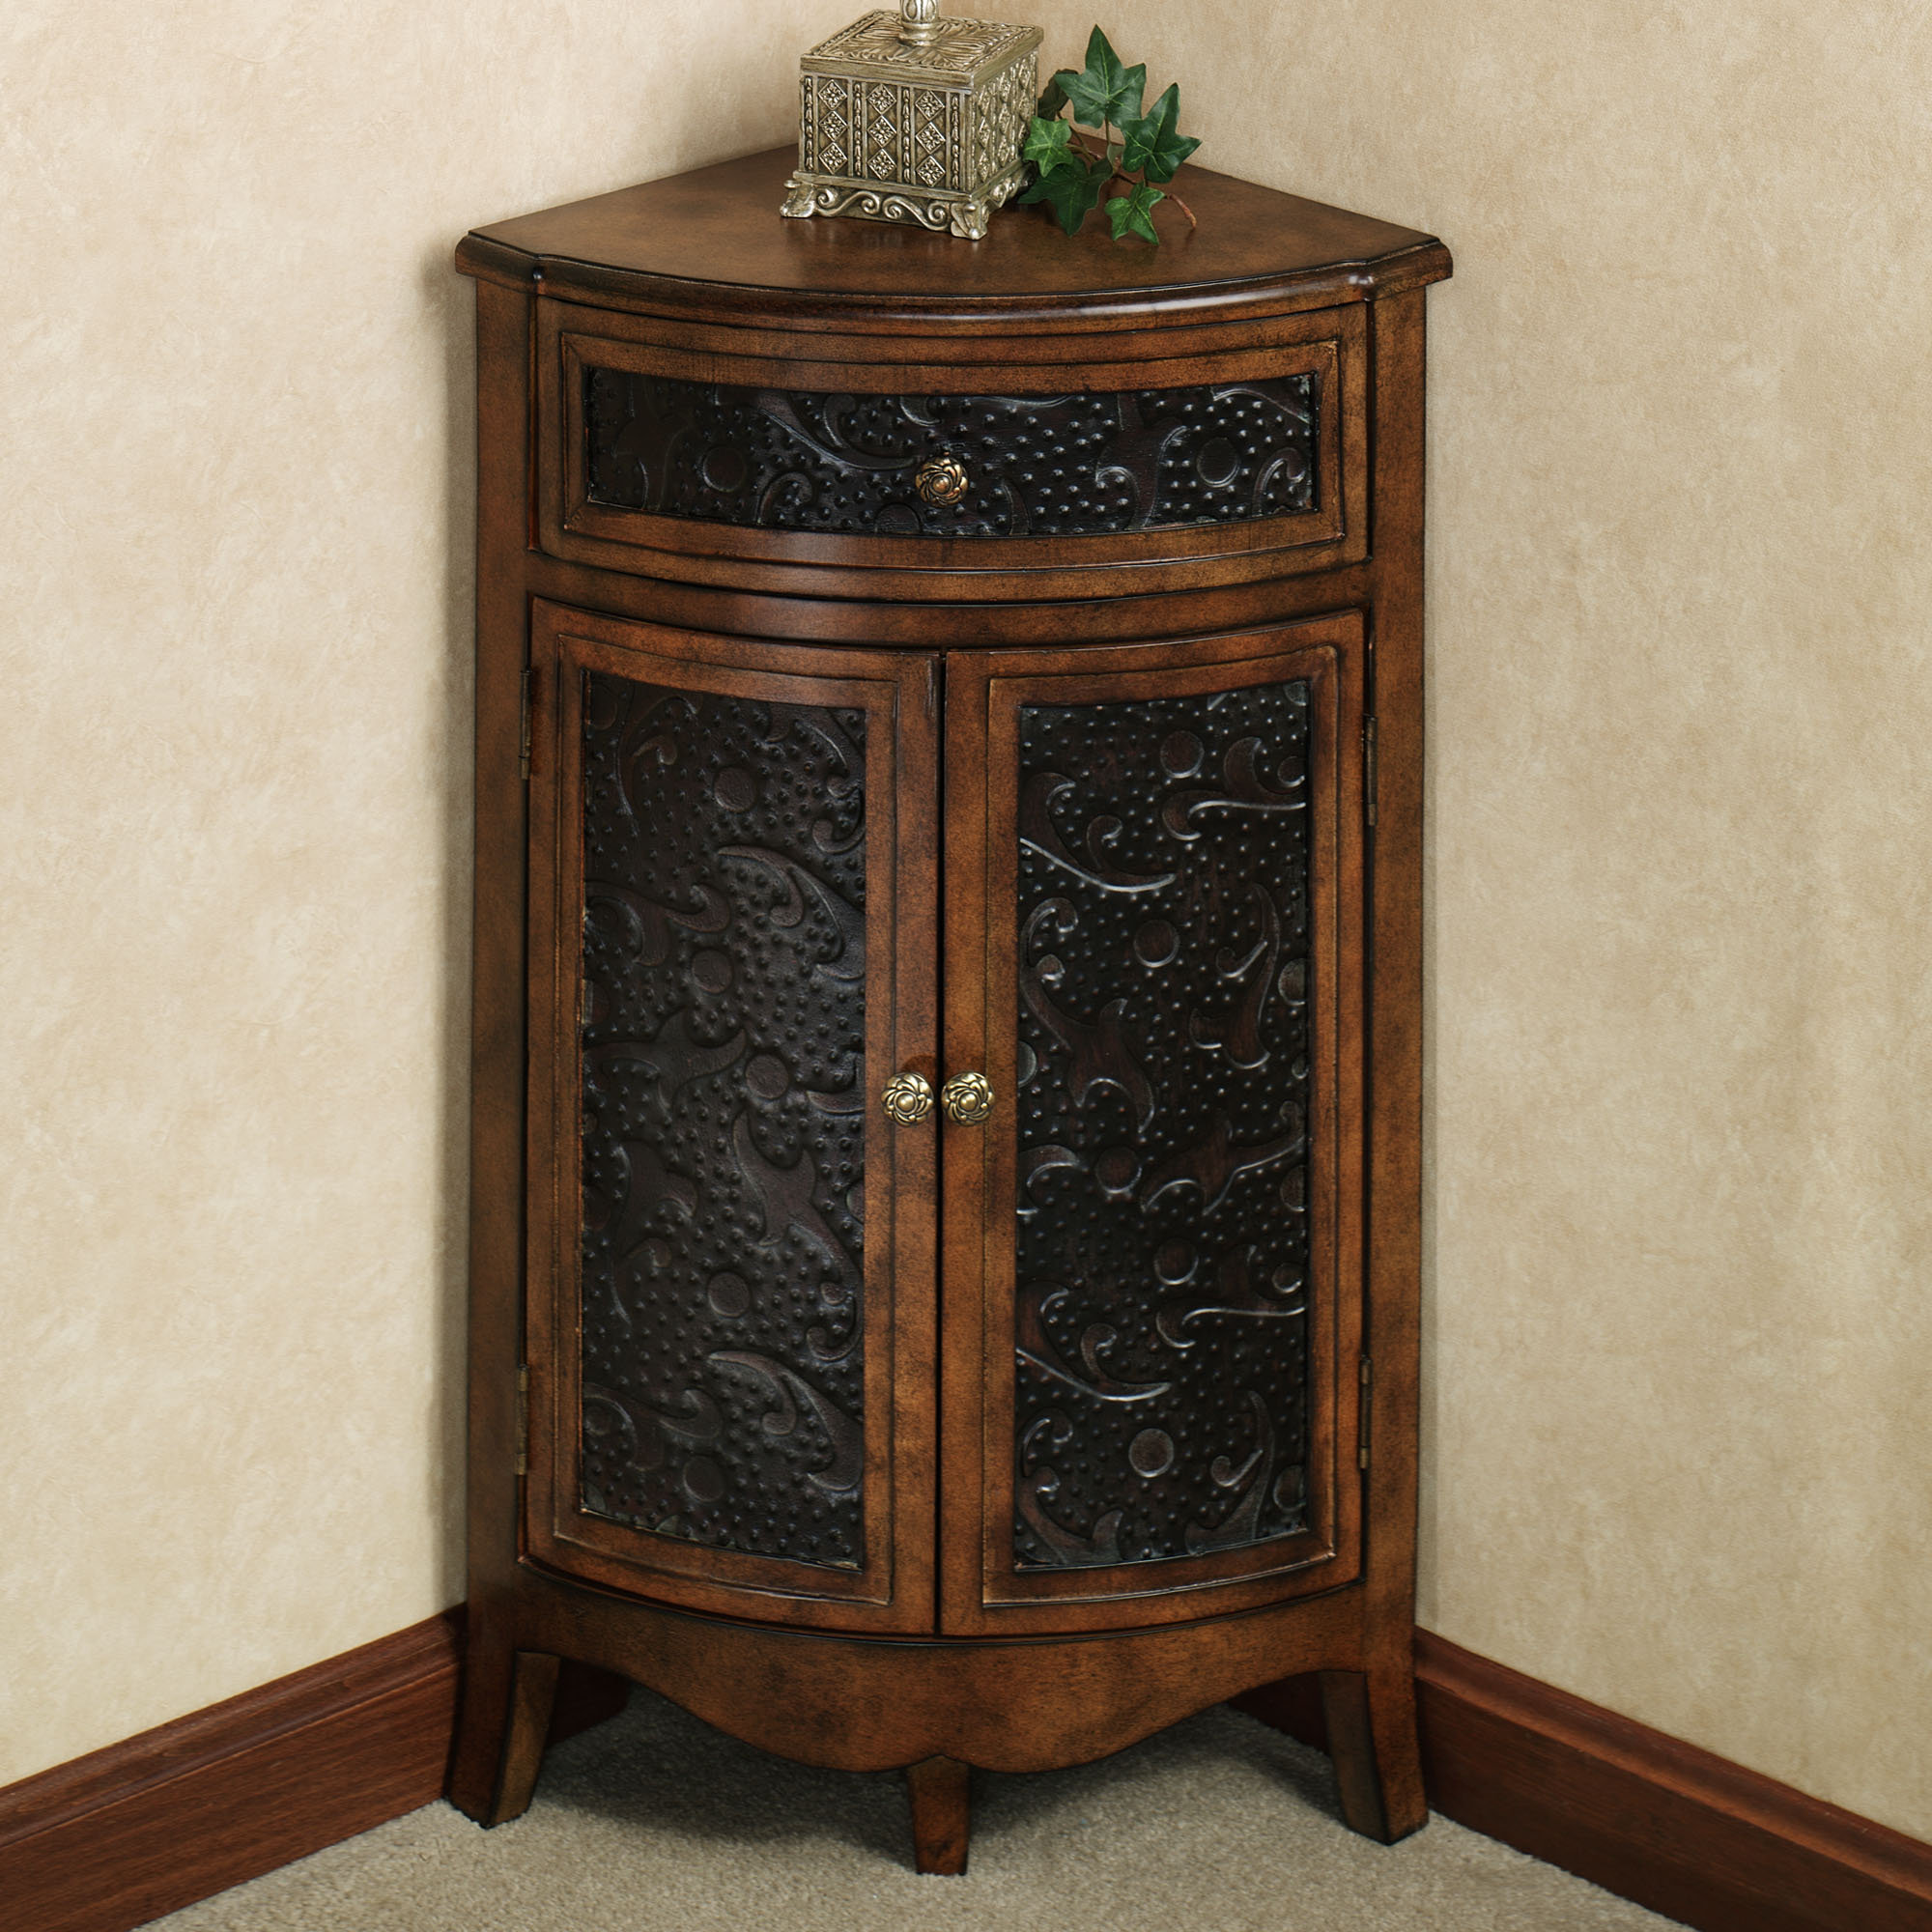 corner accent table with drawer the home redesign nice and clean cabinet side black wood rose gold wooden floorboards small glass lamps lily lamp round occasional marble willow